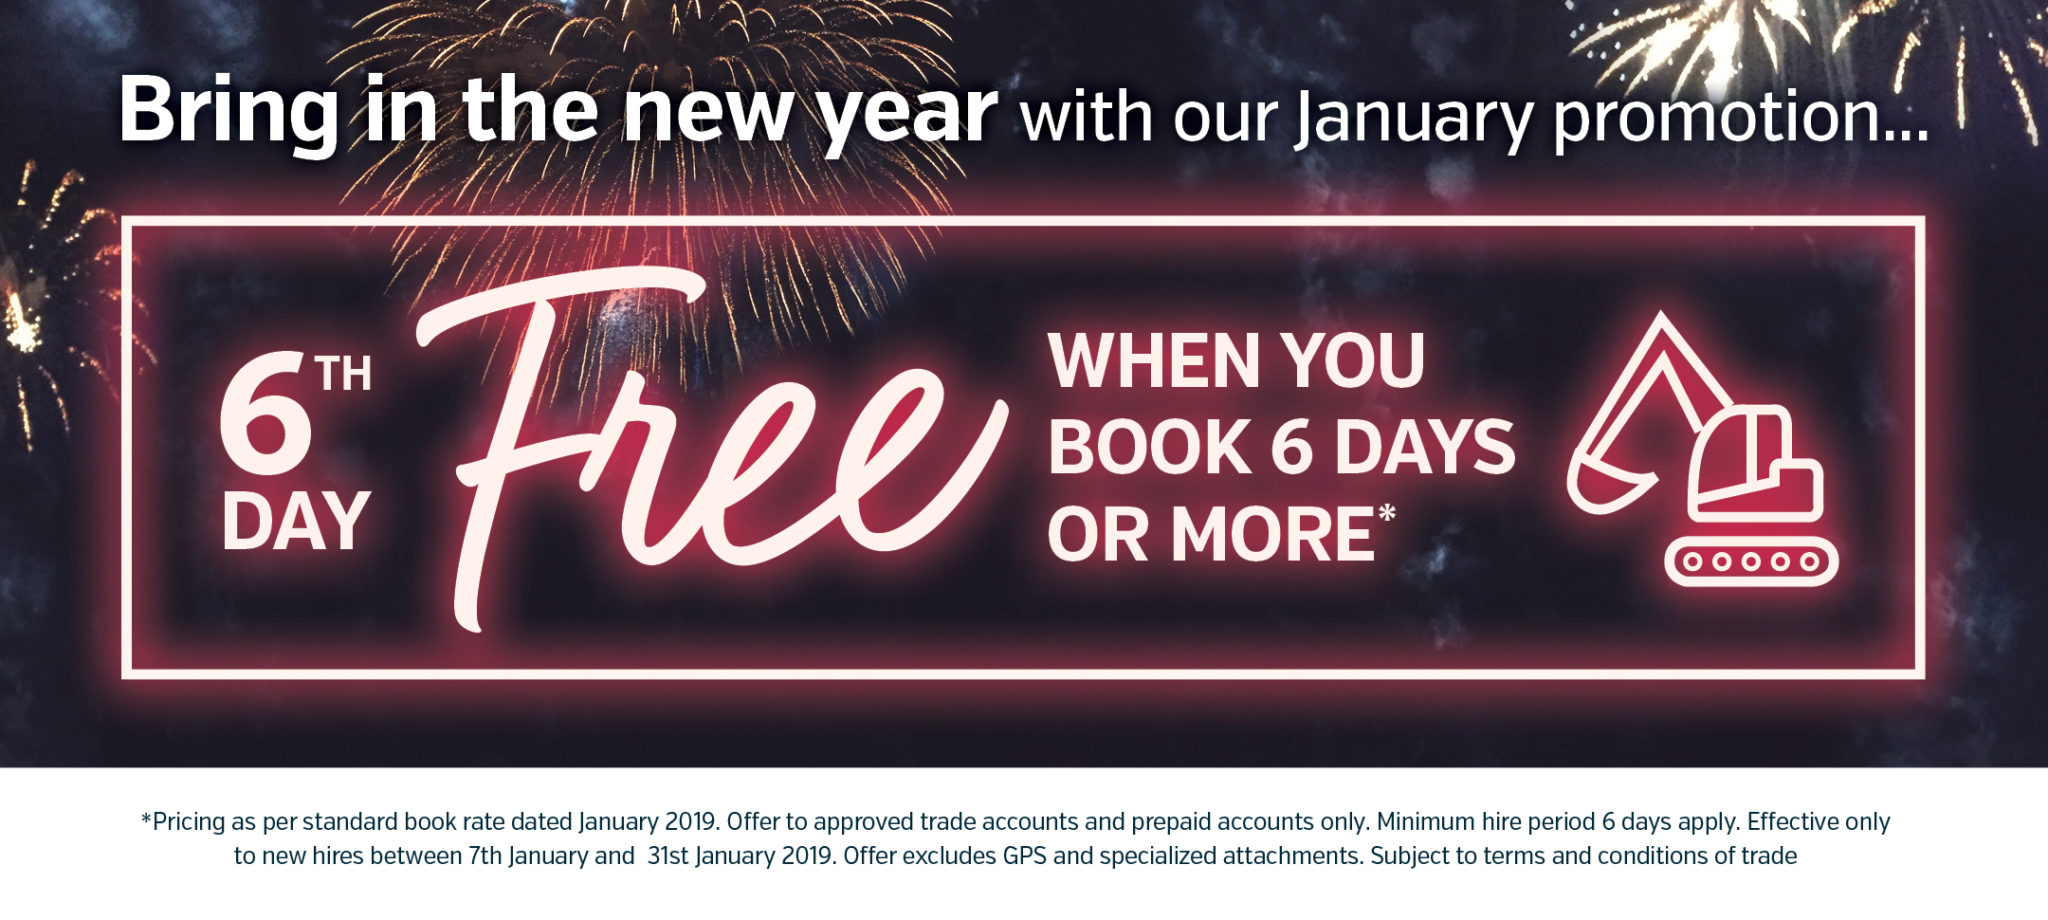 6th day free when you book for 6 days or more